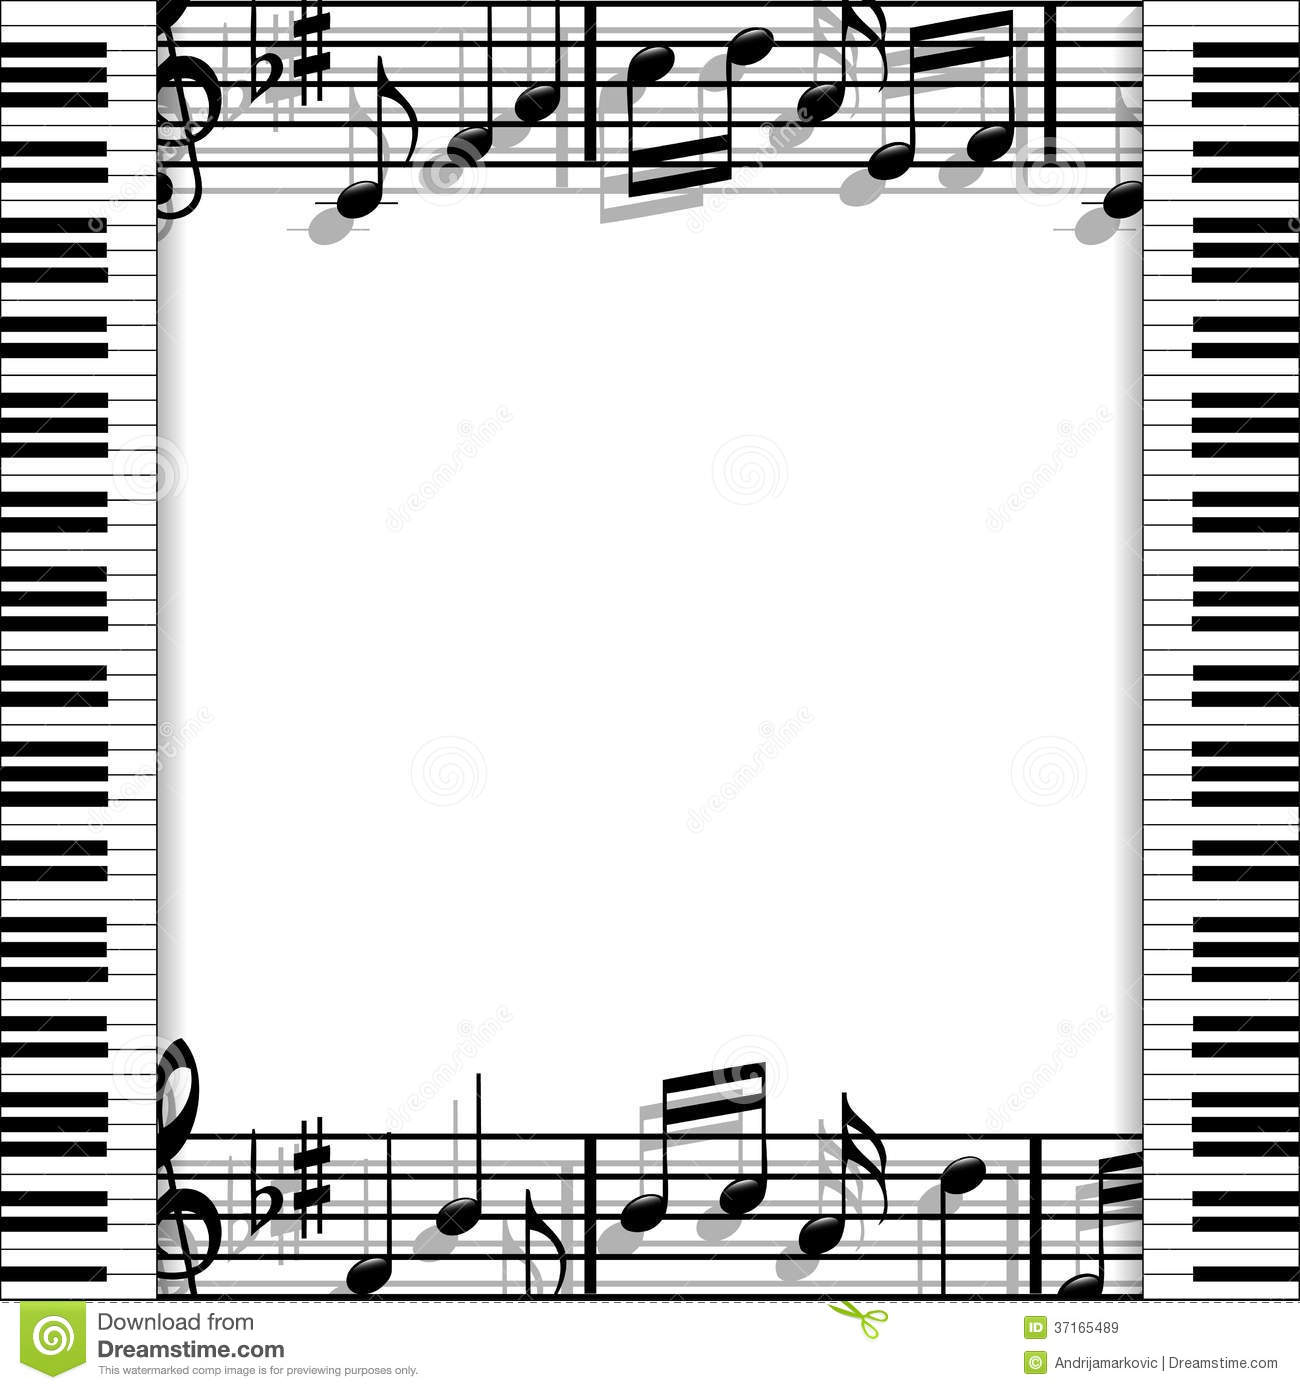 Illustration of a music frame with keyboards and musical notes on a